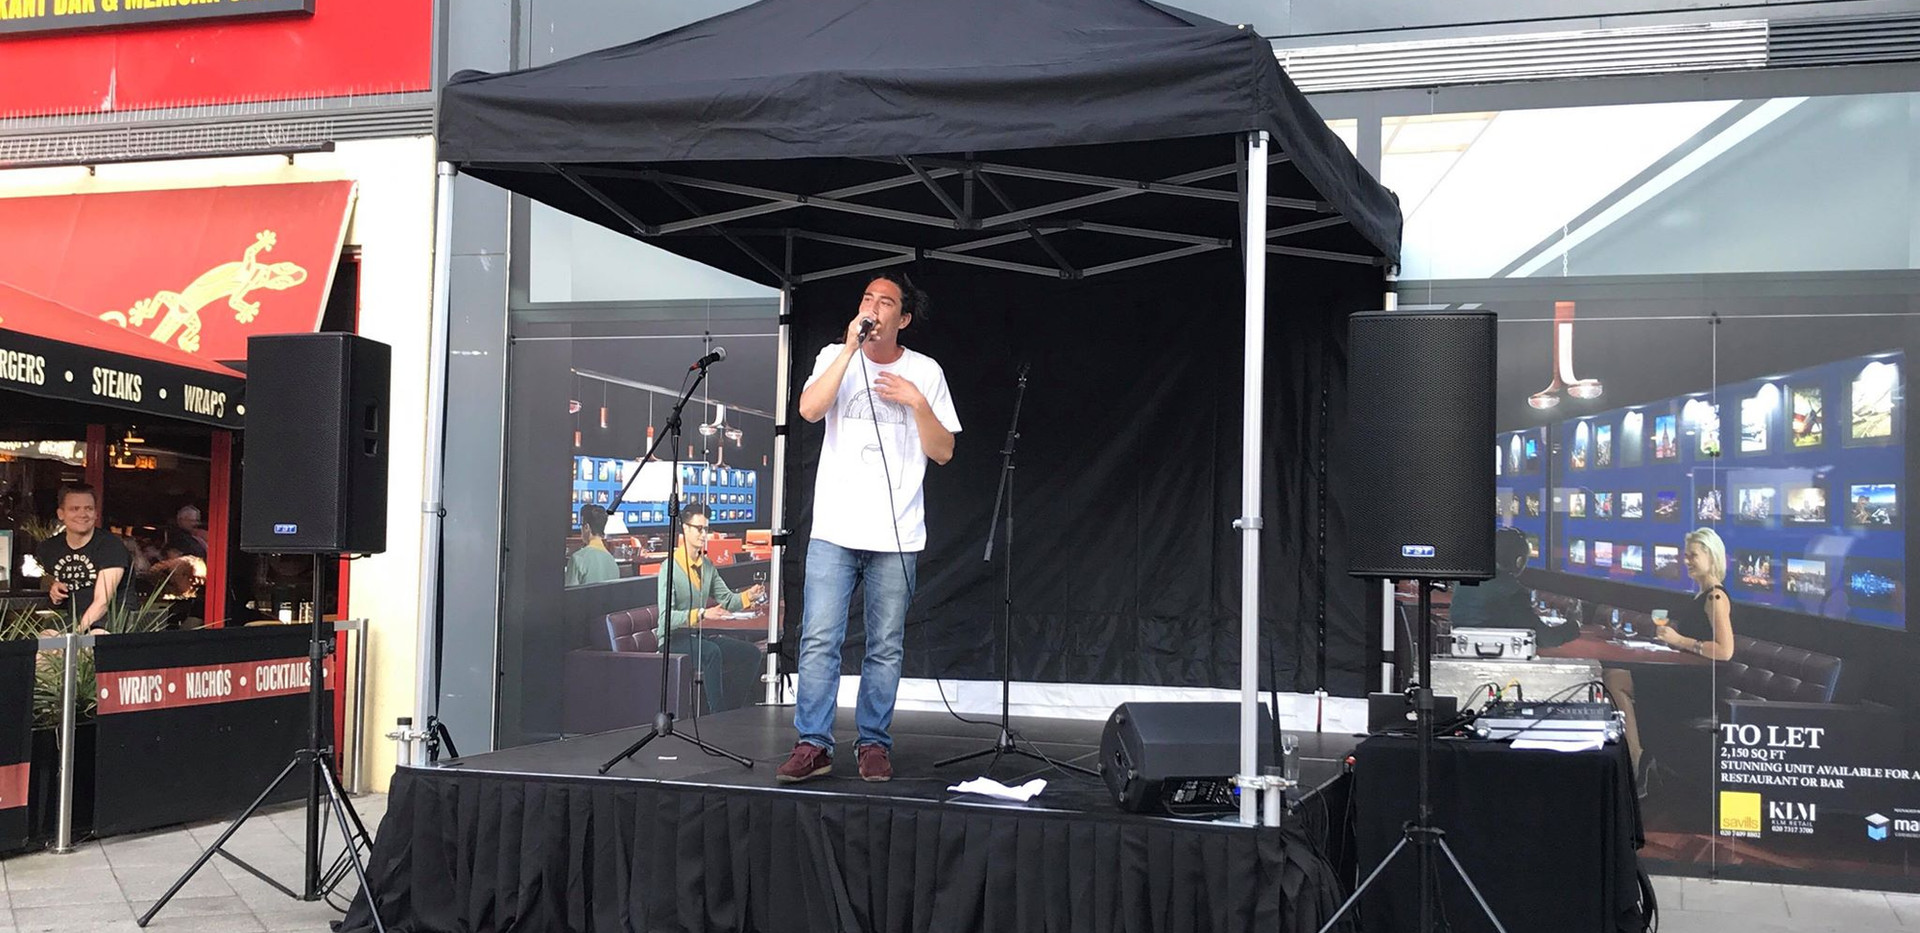 Outdoor stage Hire 3m x 3m 1.jpg